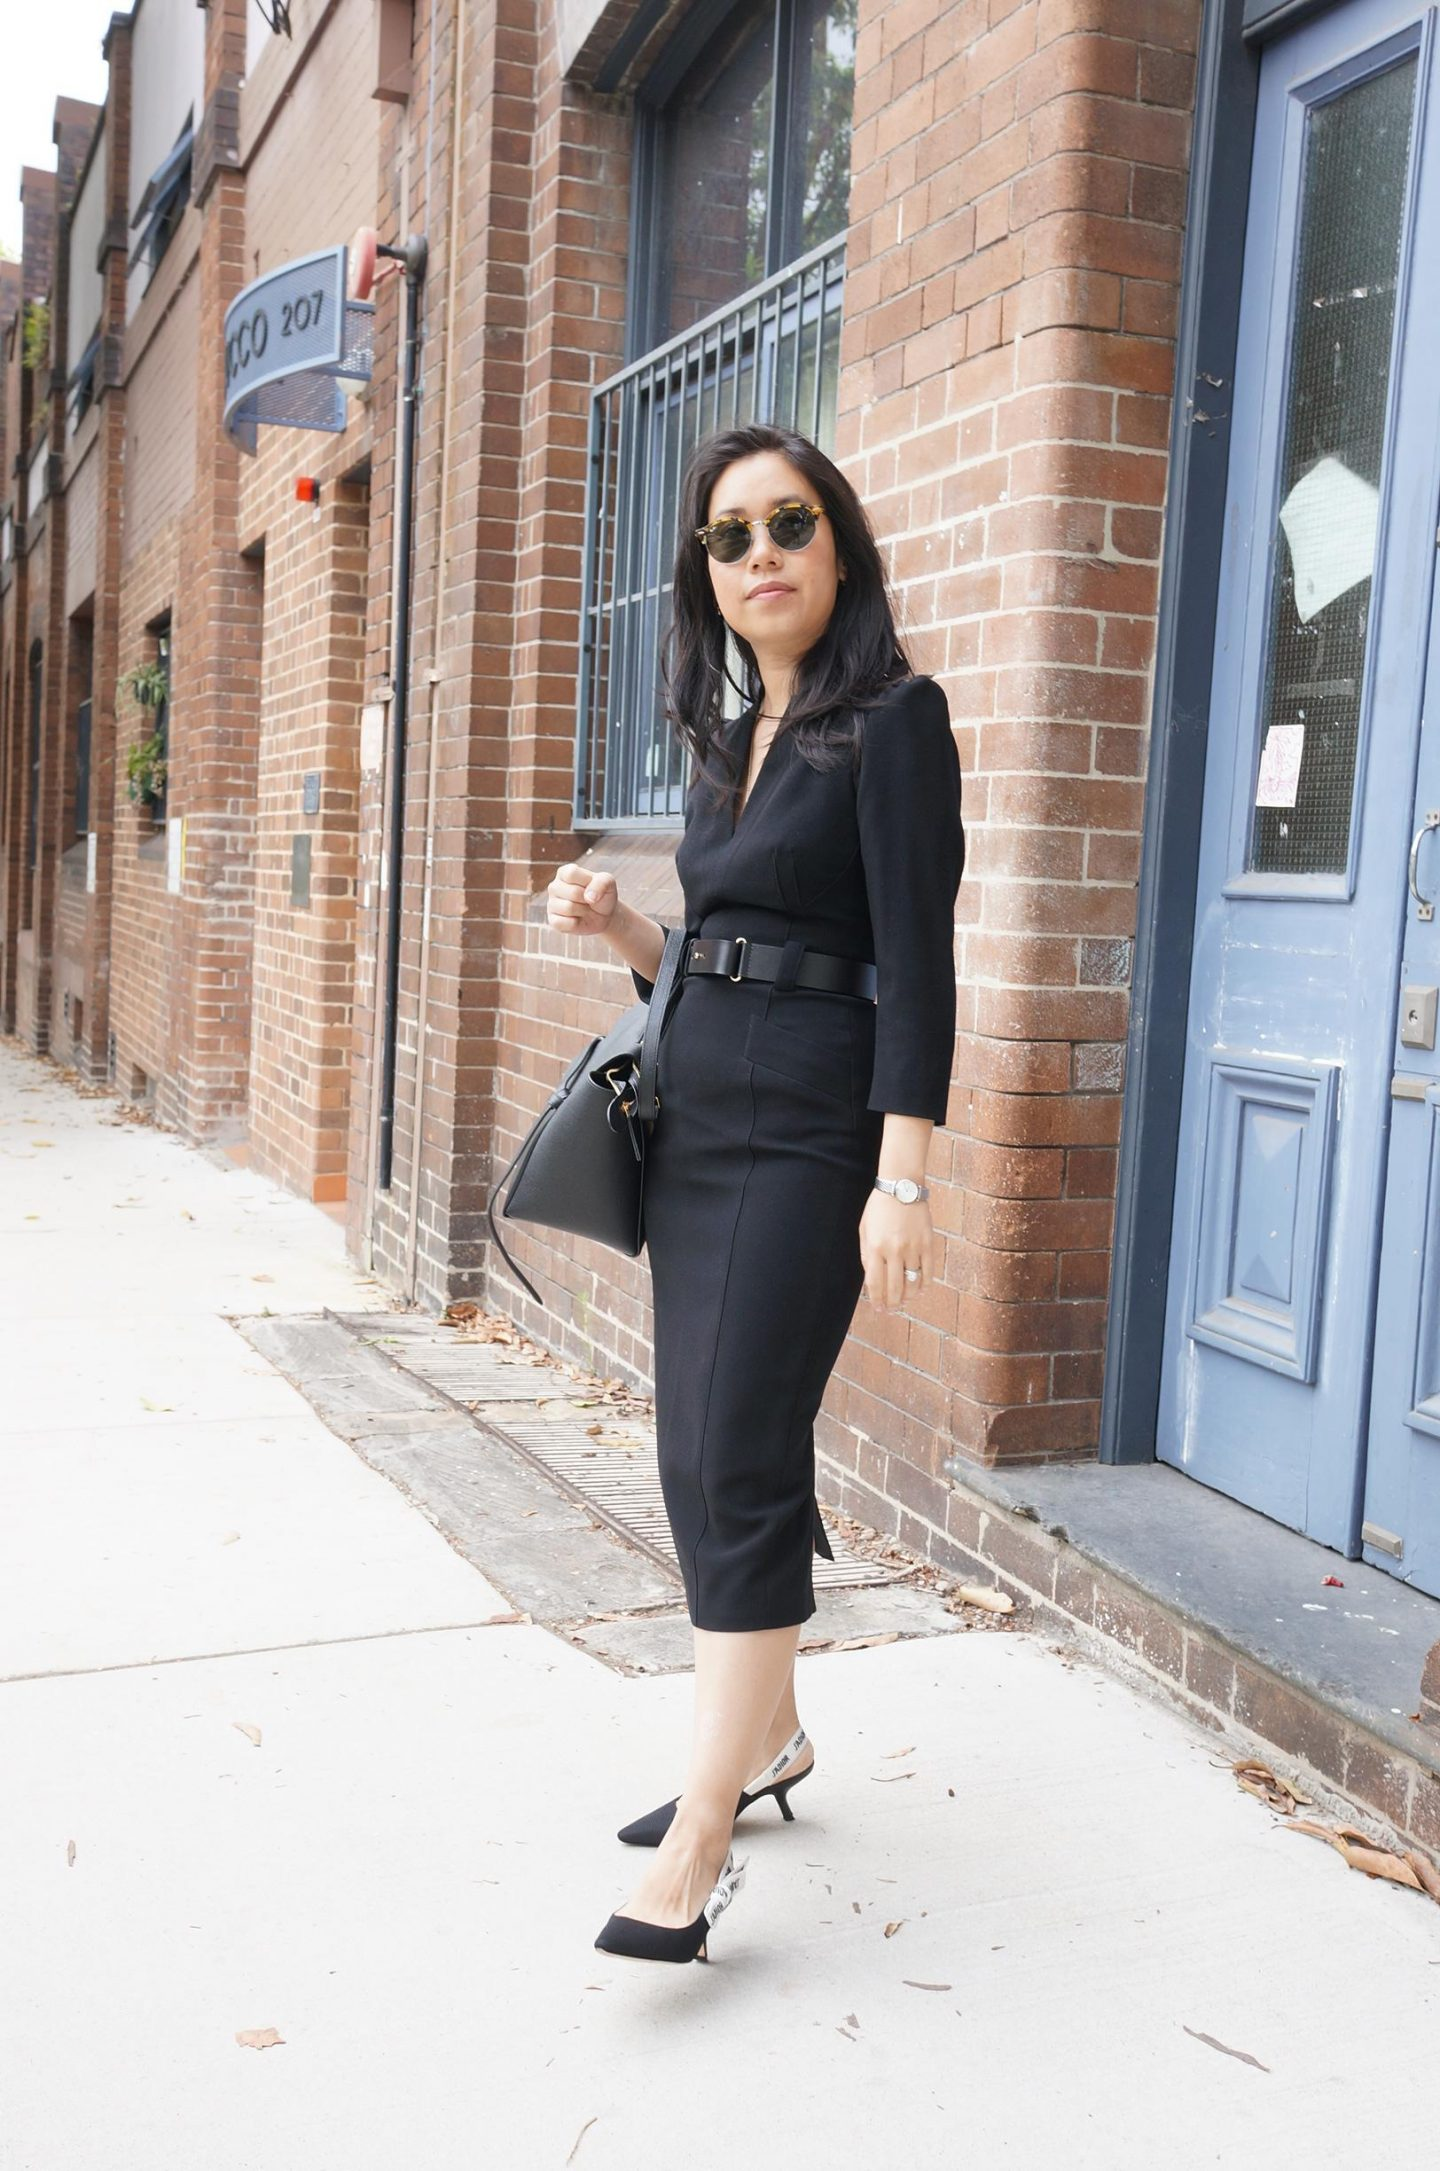 woman wearing karen millen forever dress in blog post about what to wear for your first day of a new job